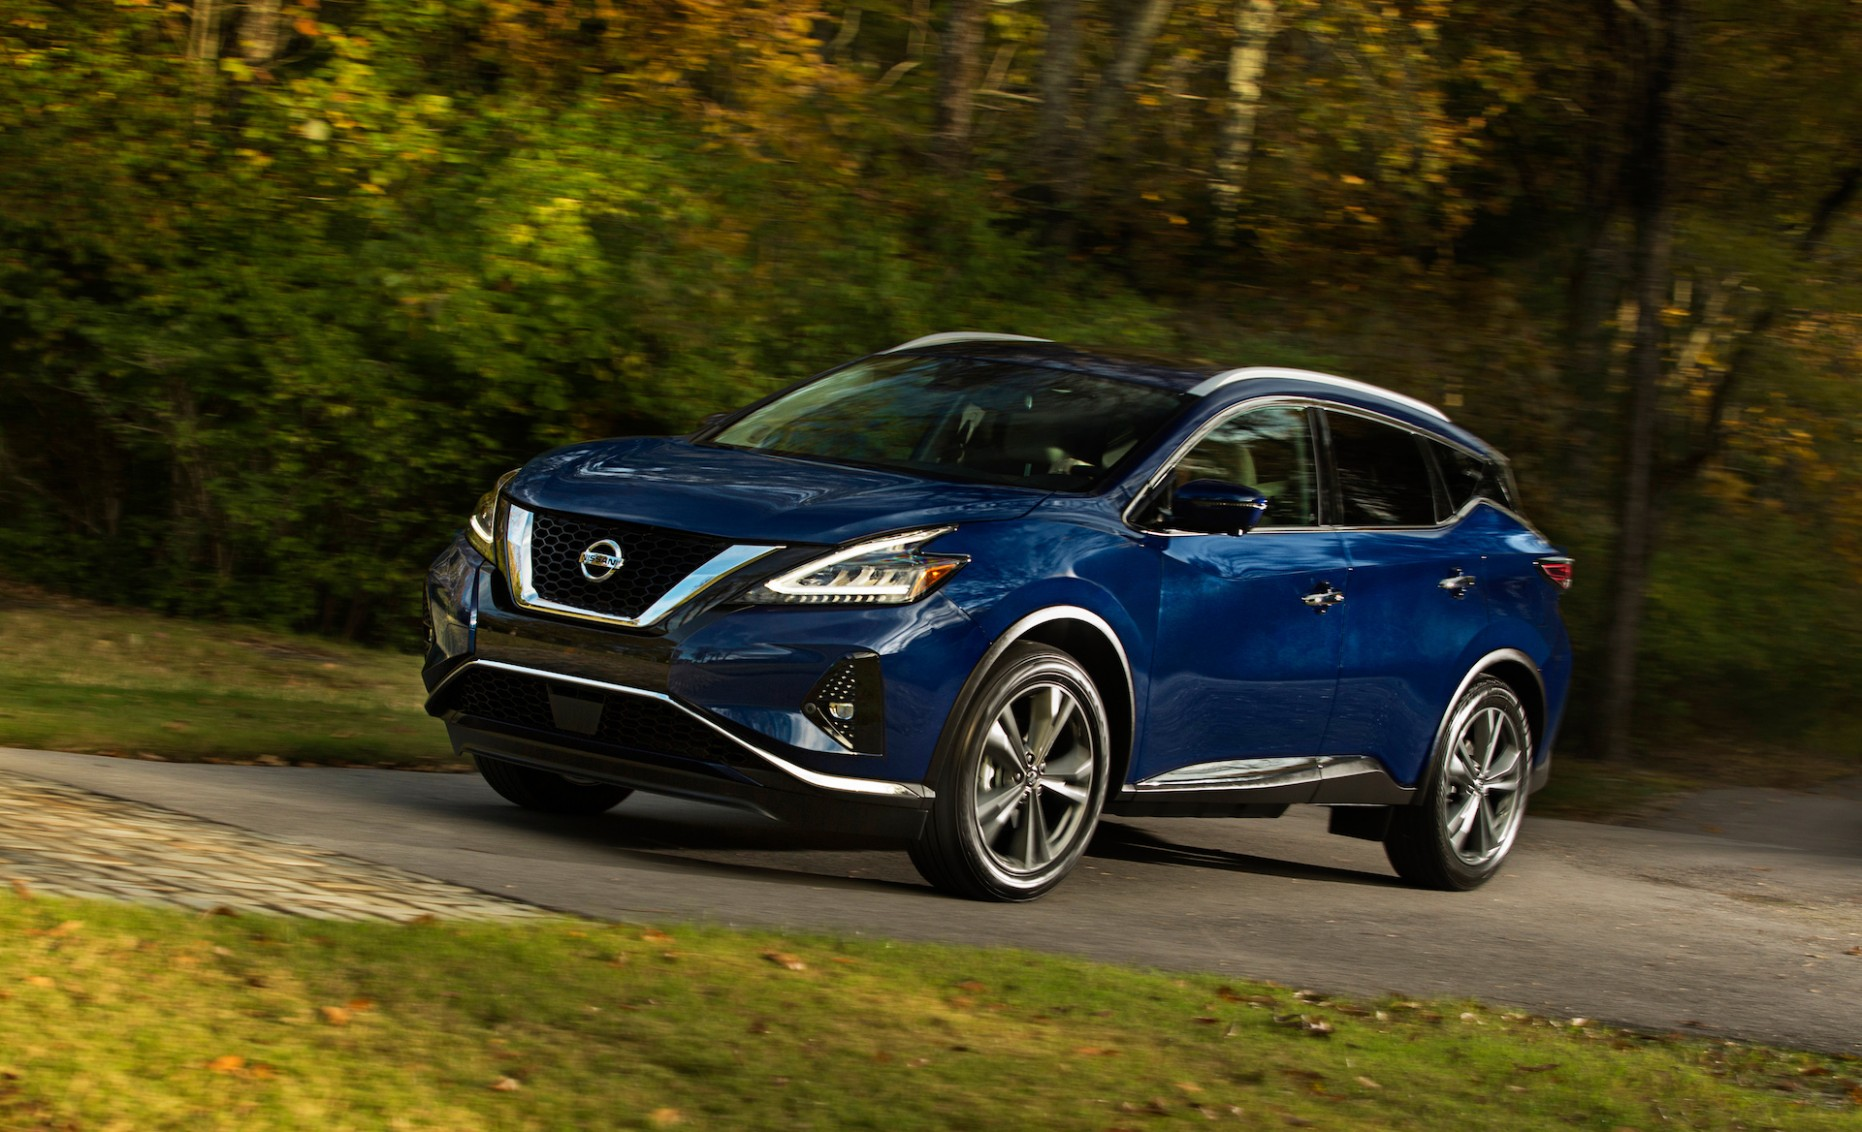 5 Nissan Murano Review, Ratings, Specs, Prices, and Photos - Nissan Murano 2021